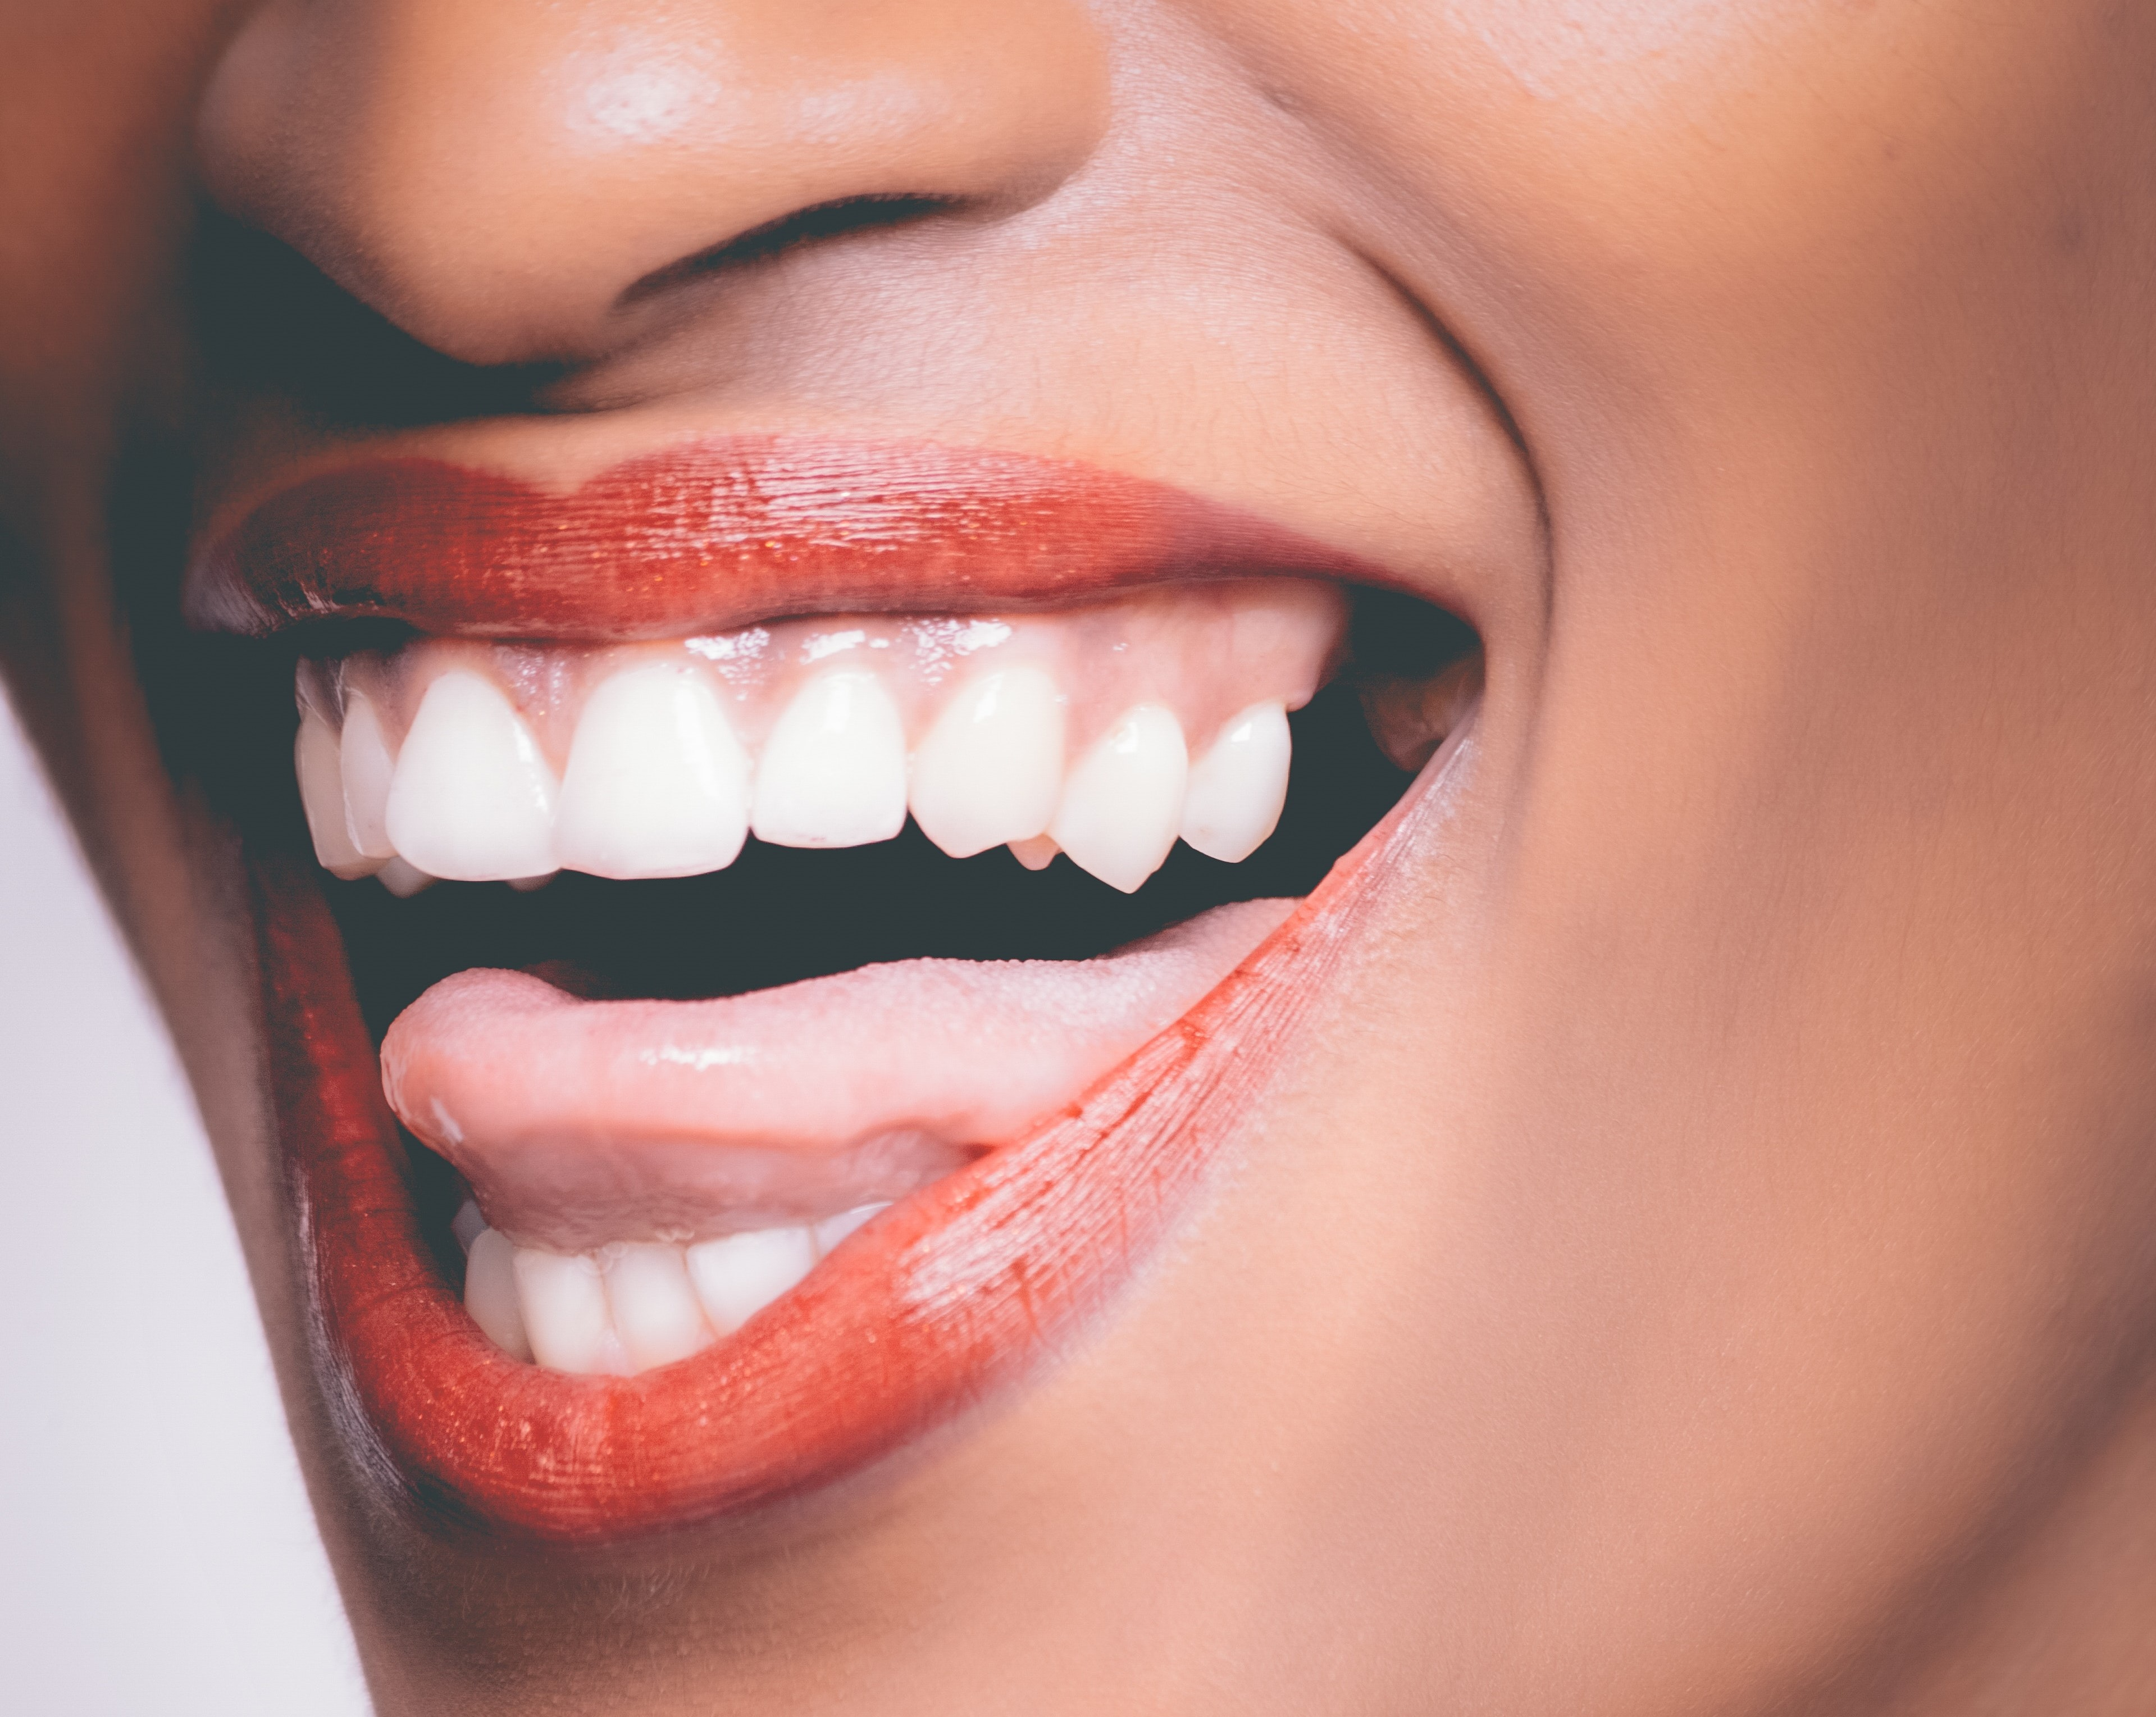 Woman's mouth, big open mouth smile